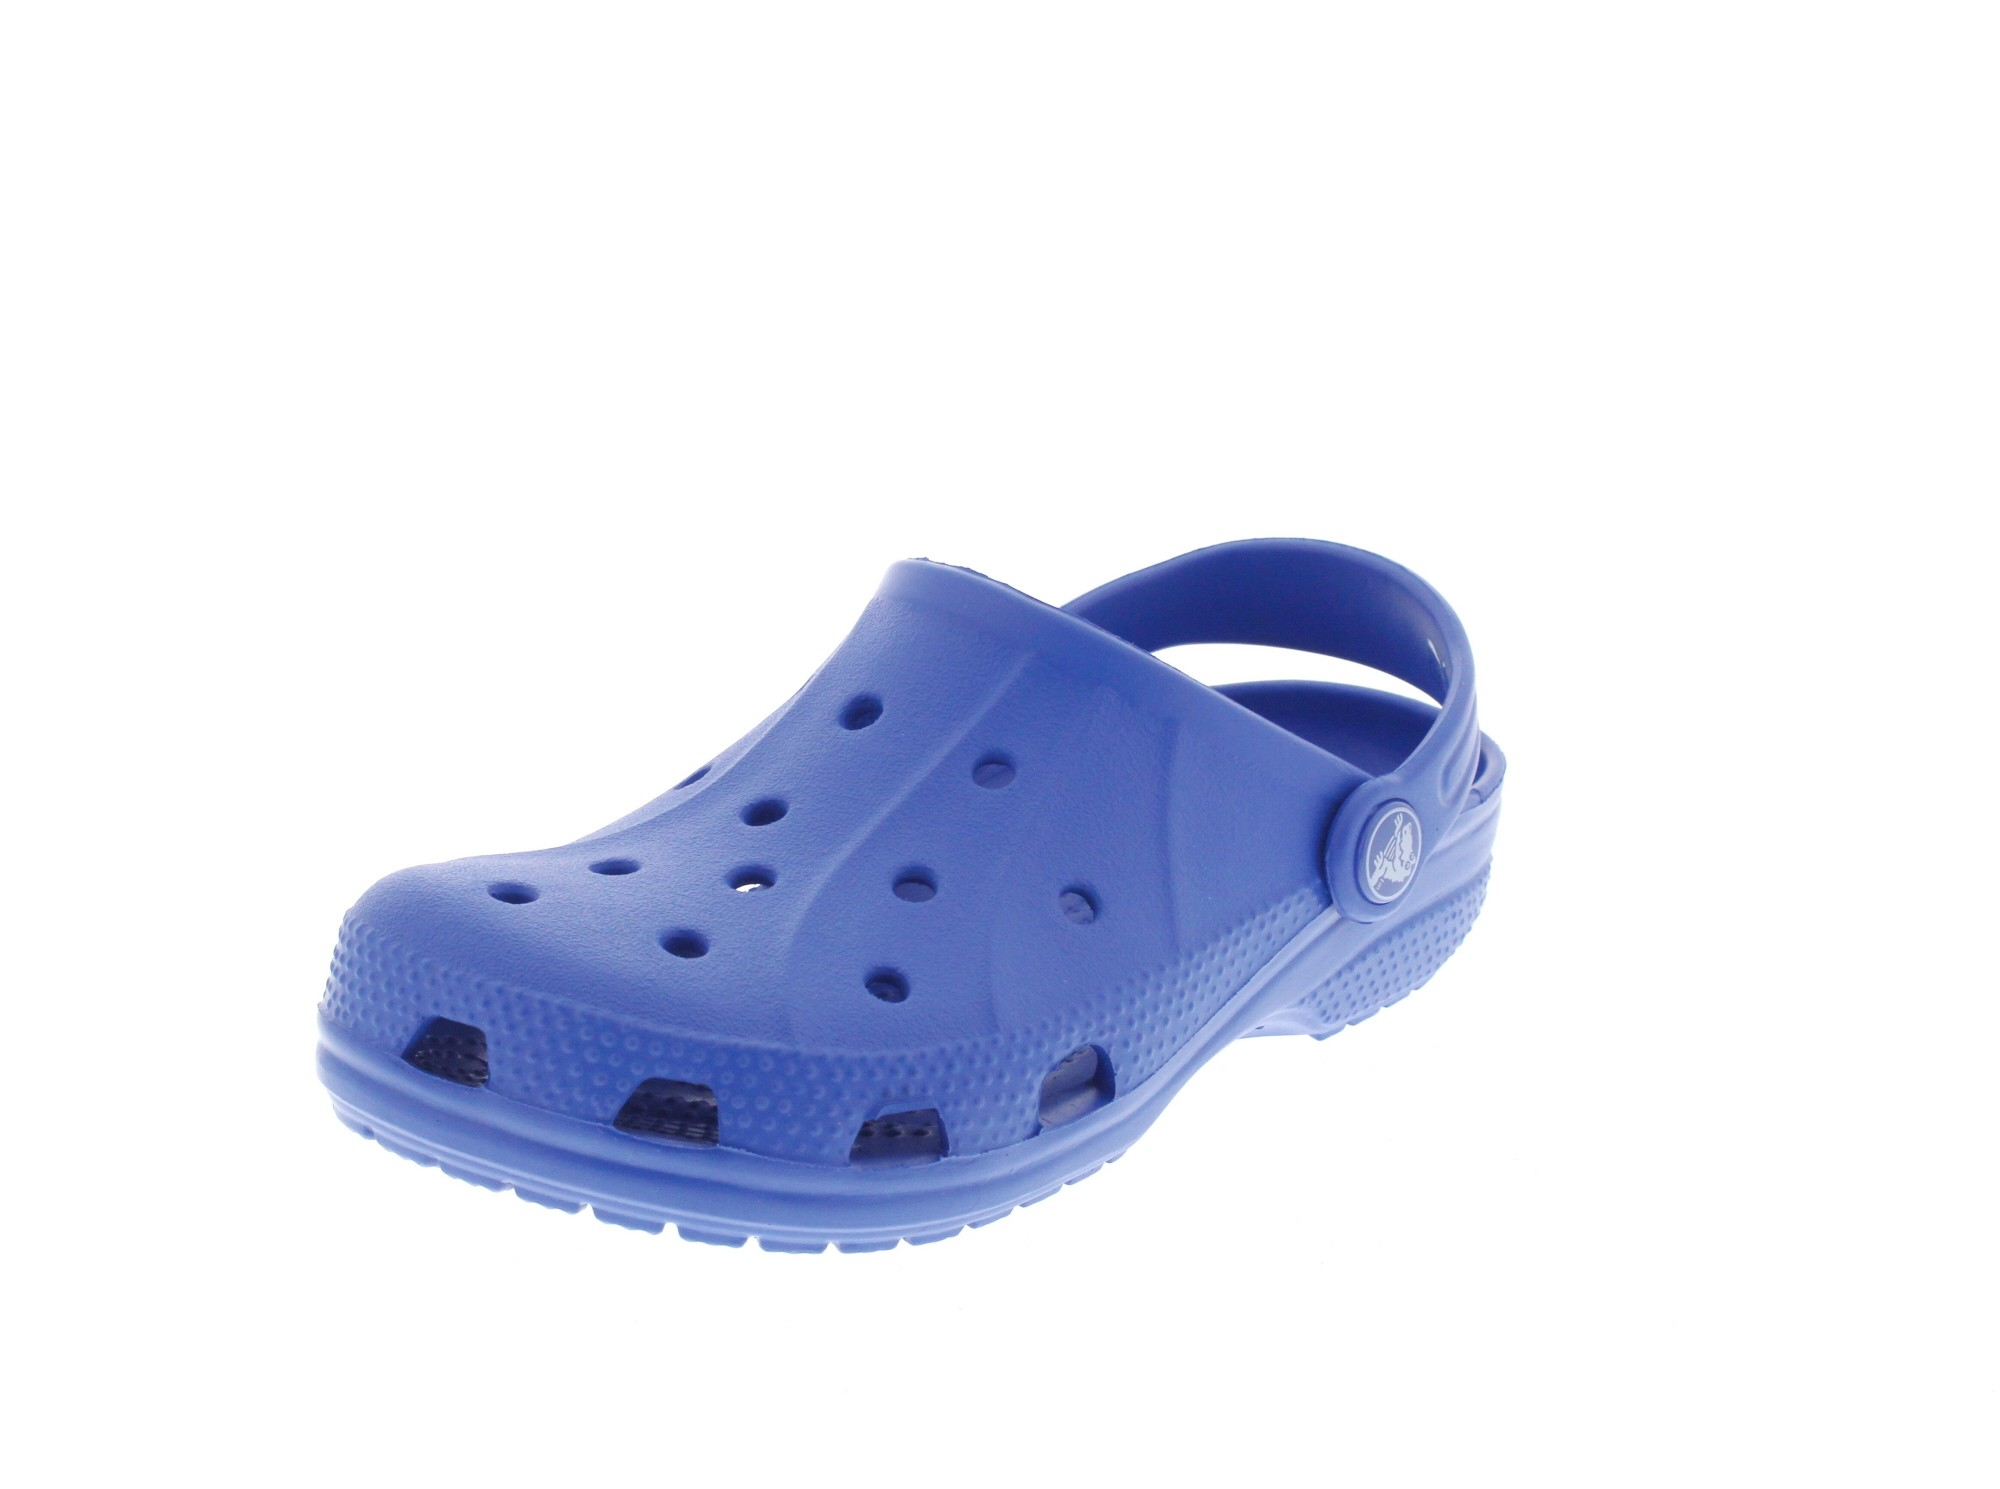 CROCS Kinderschuhe - Clogs RALEN KIDS - sea blue-0